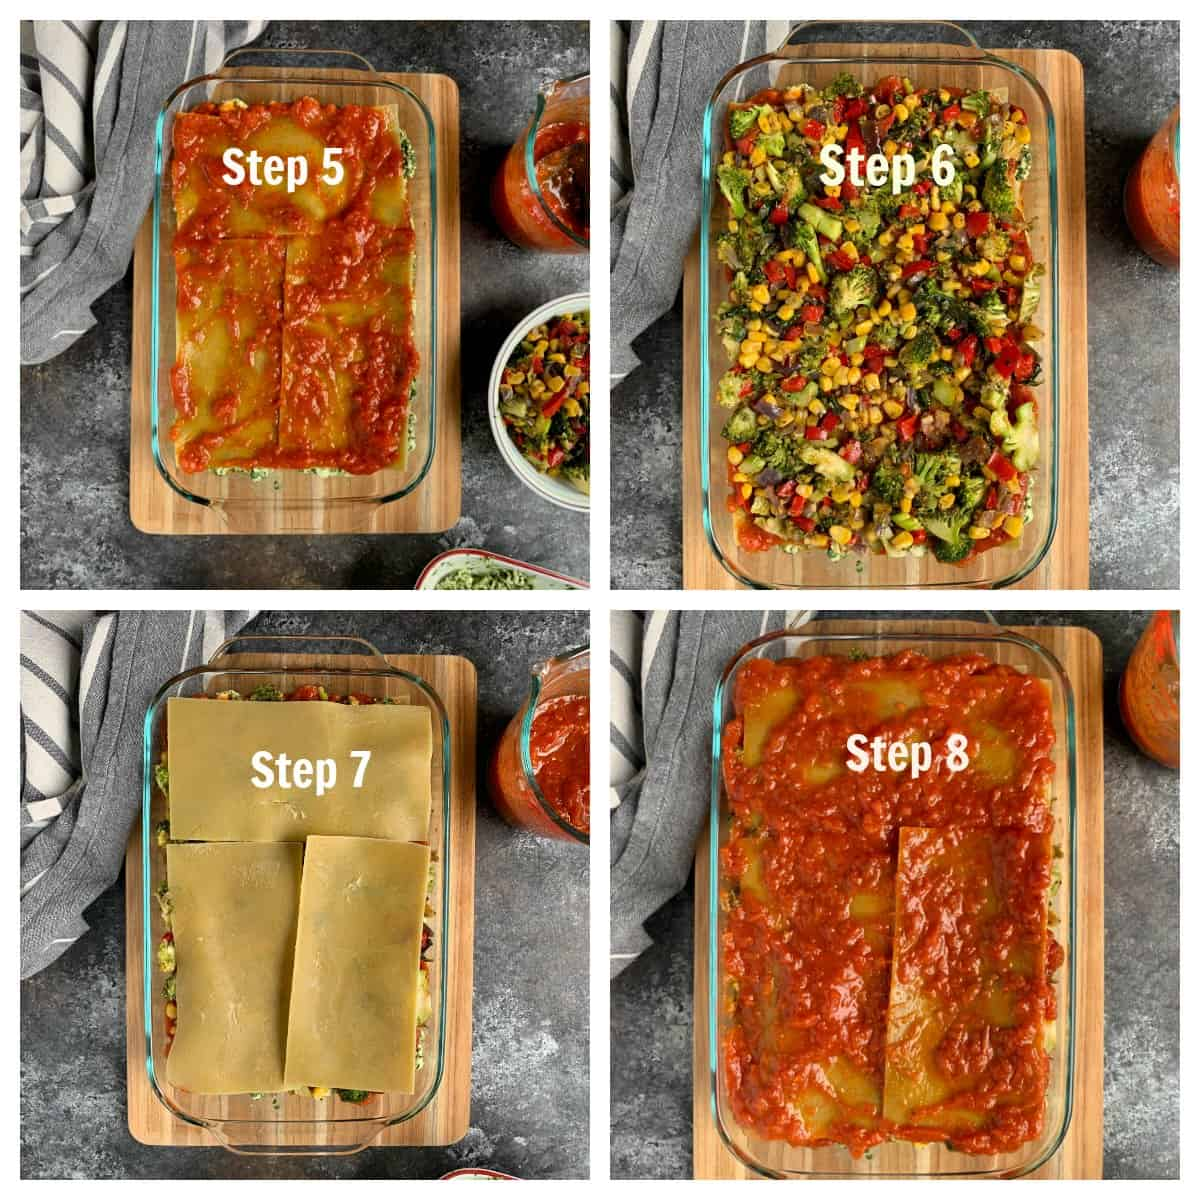 Vegetable and sauce layer put in the baking dish